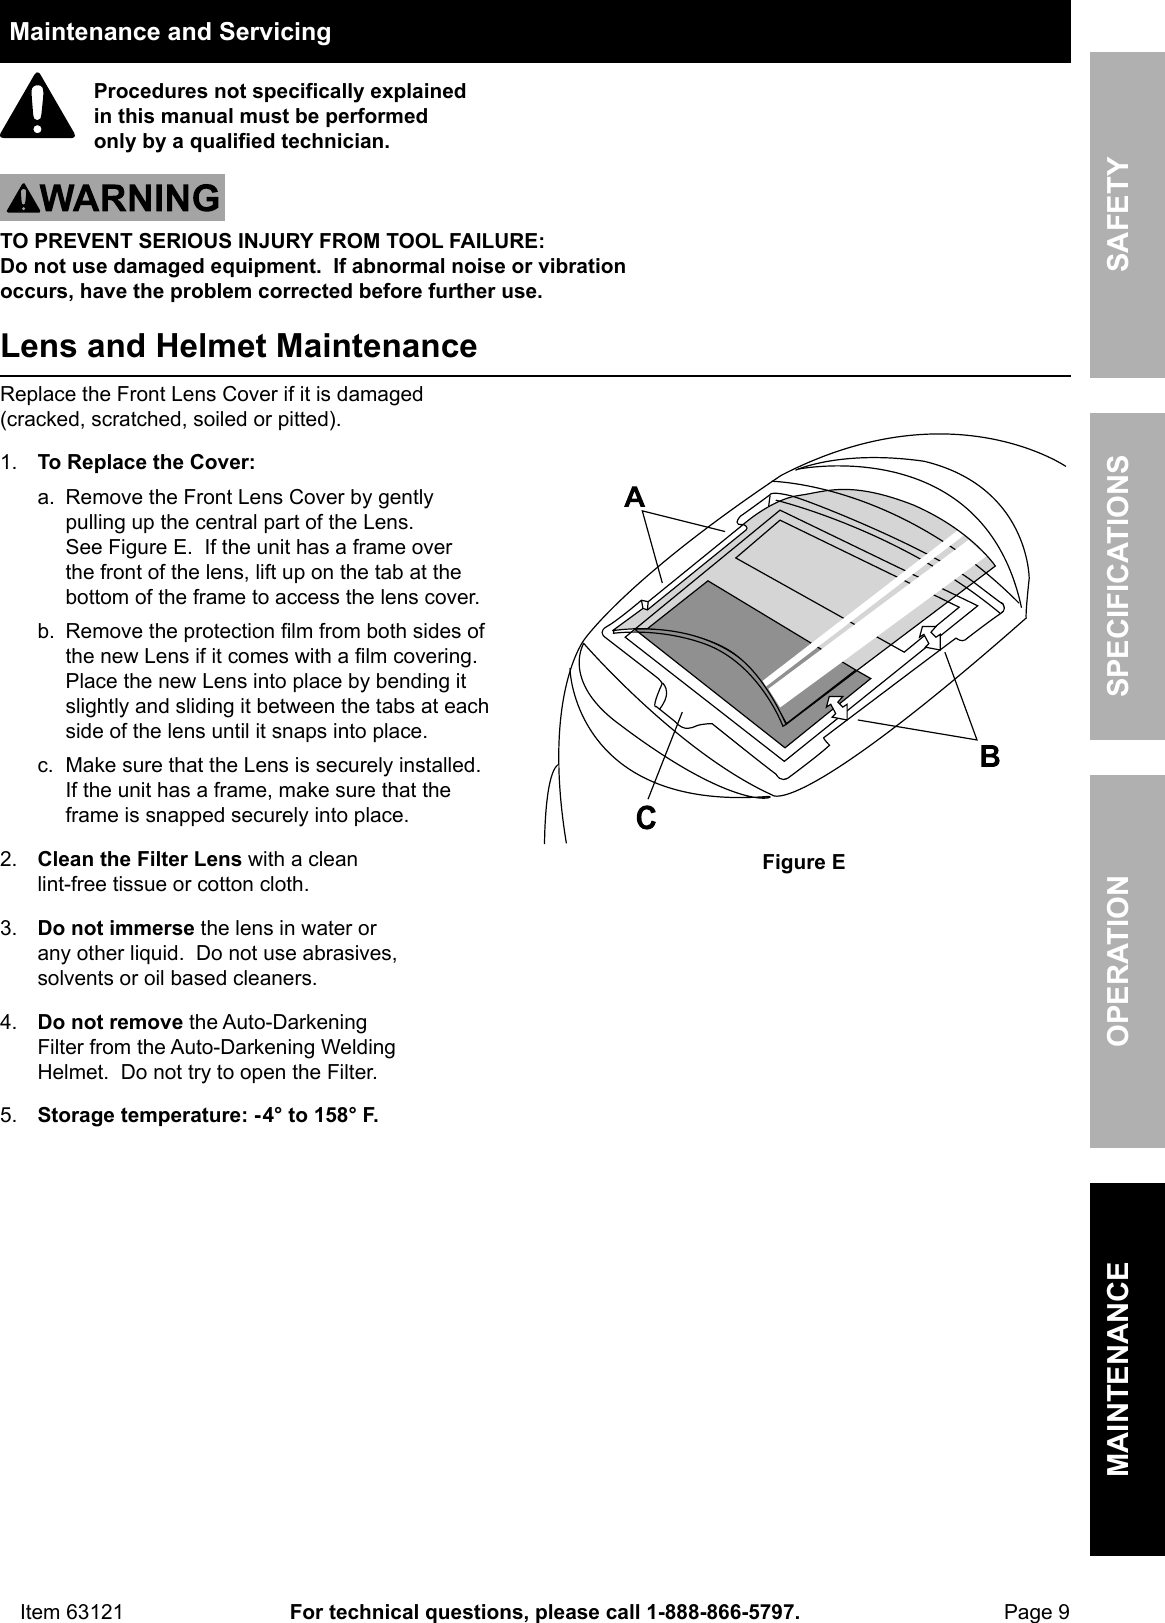 Manual For The 63121 Auto Darkening Welding Helmet With Racing Diagram Page 9 Of 12 Stripe